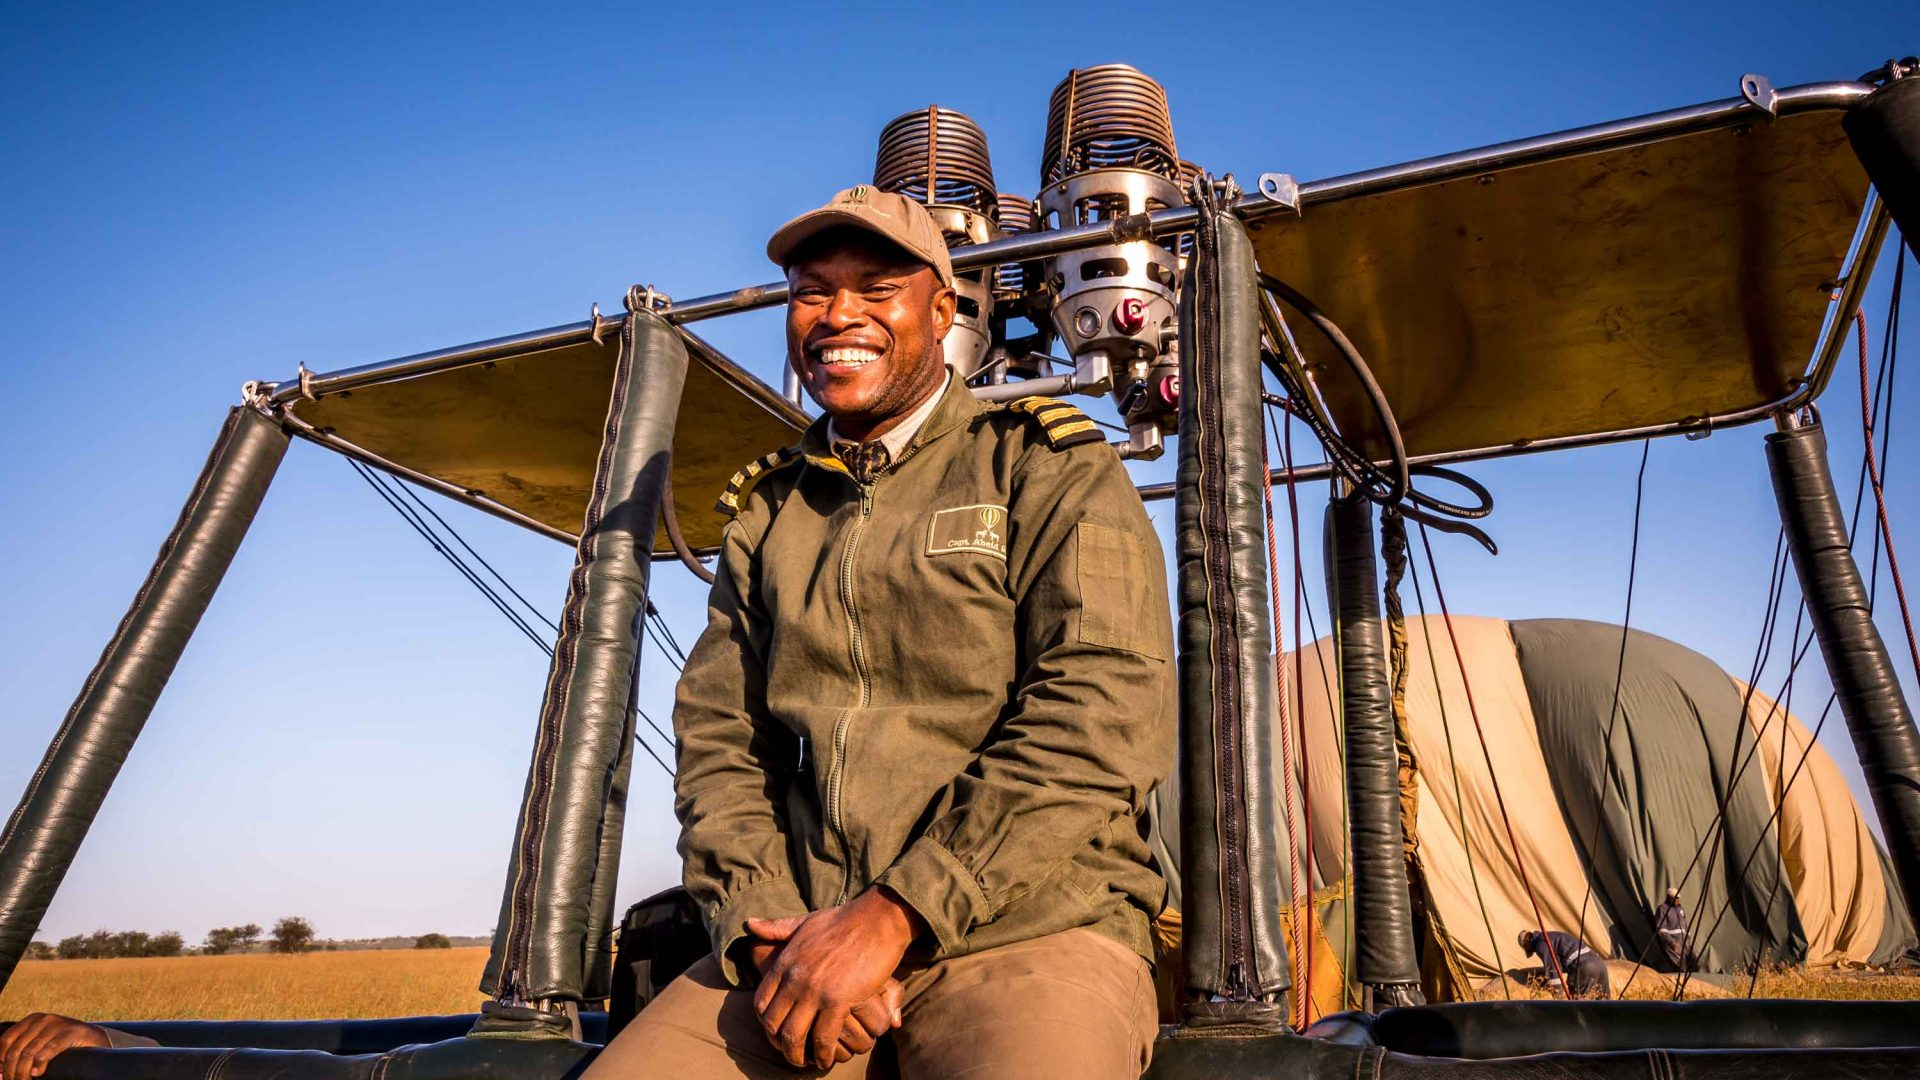 Captain Abeid Soka gives hot air ballooners a safety briefing before taking off over the Serengeti in Tanzania.